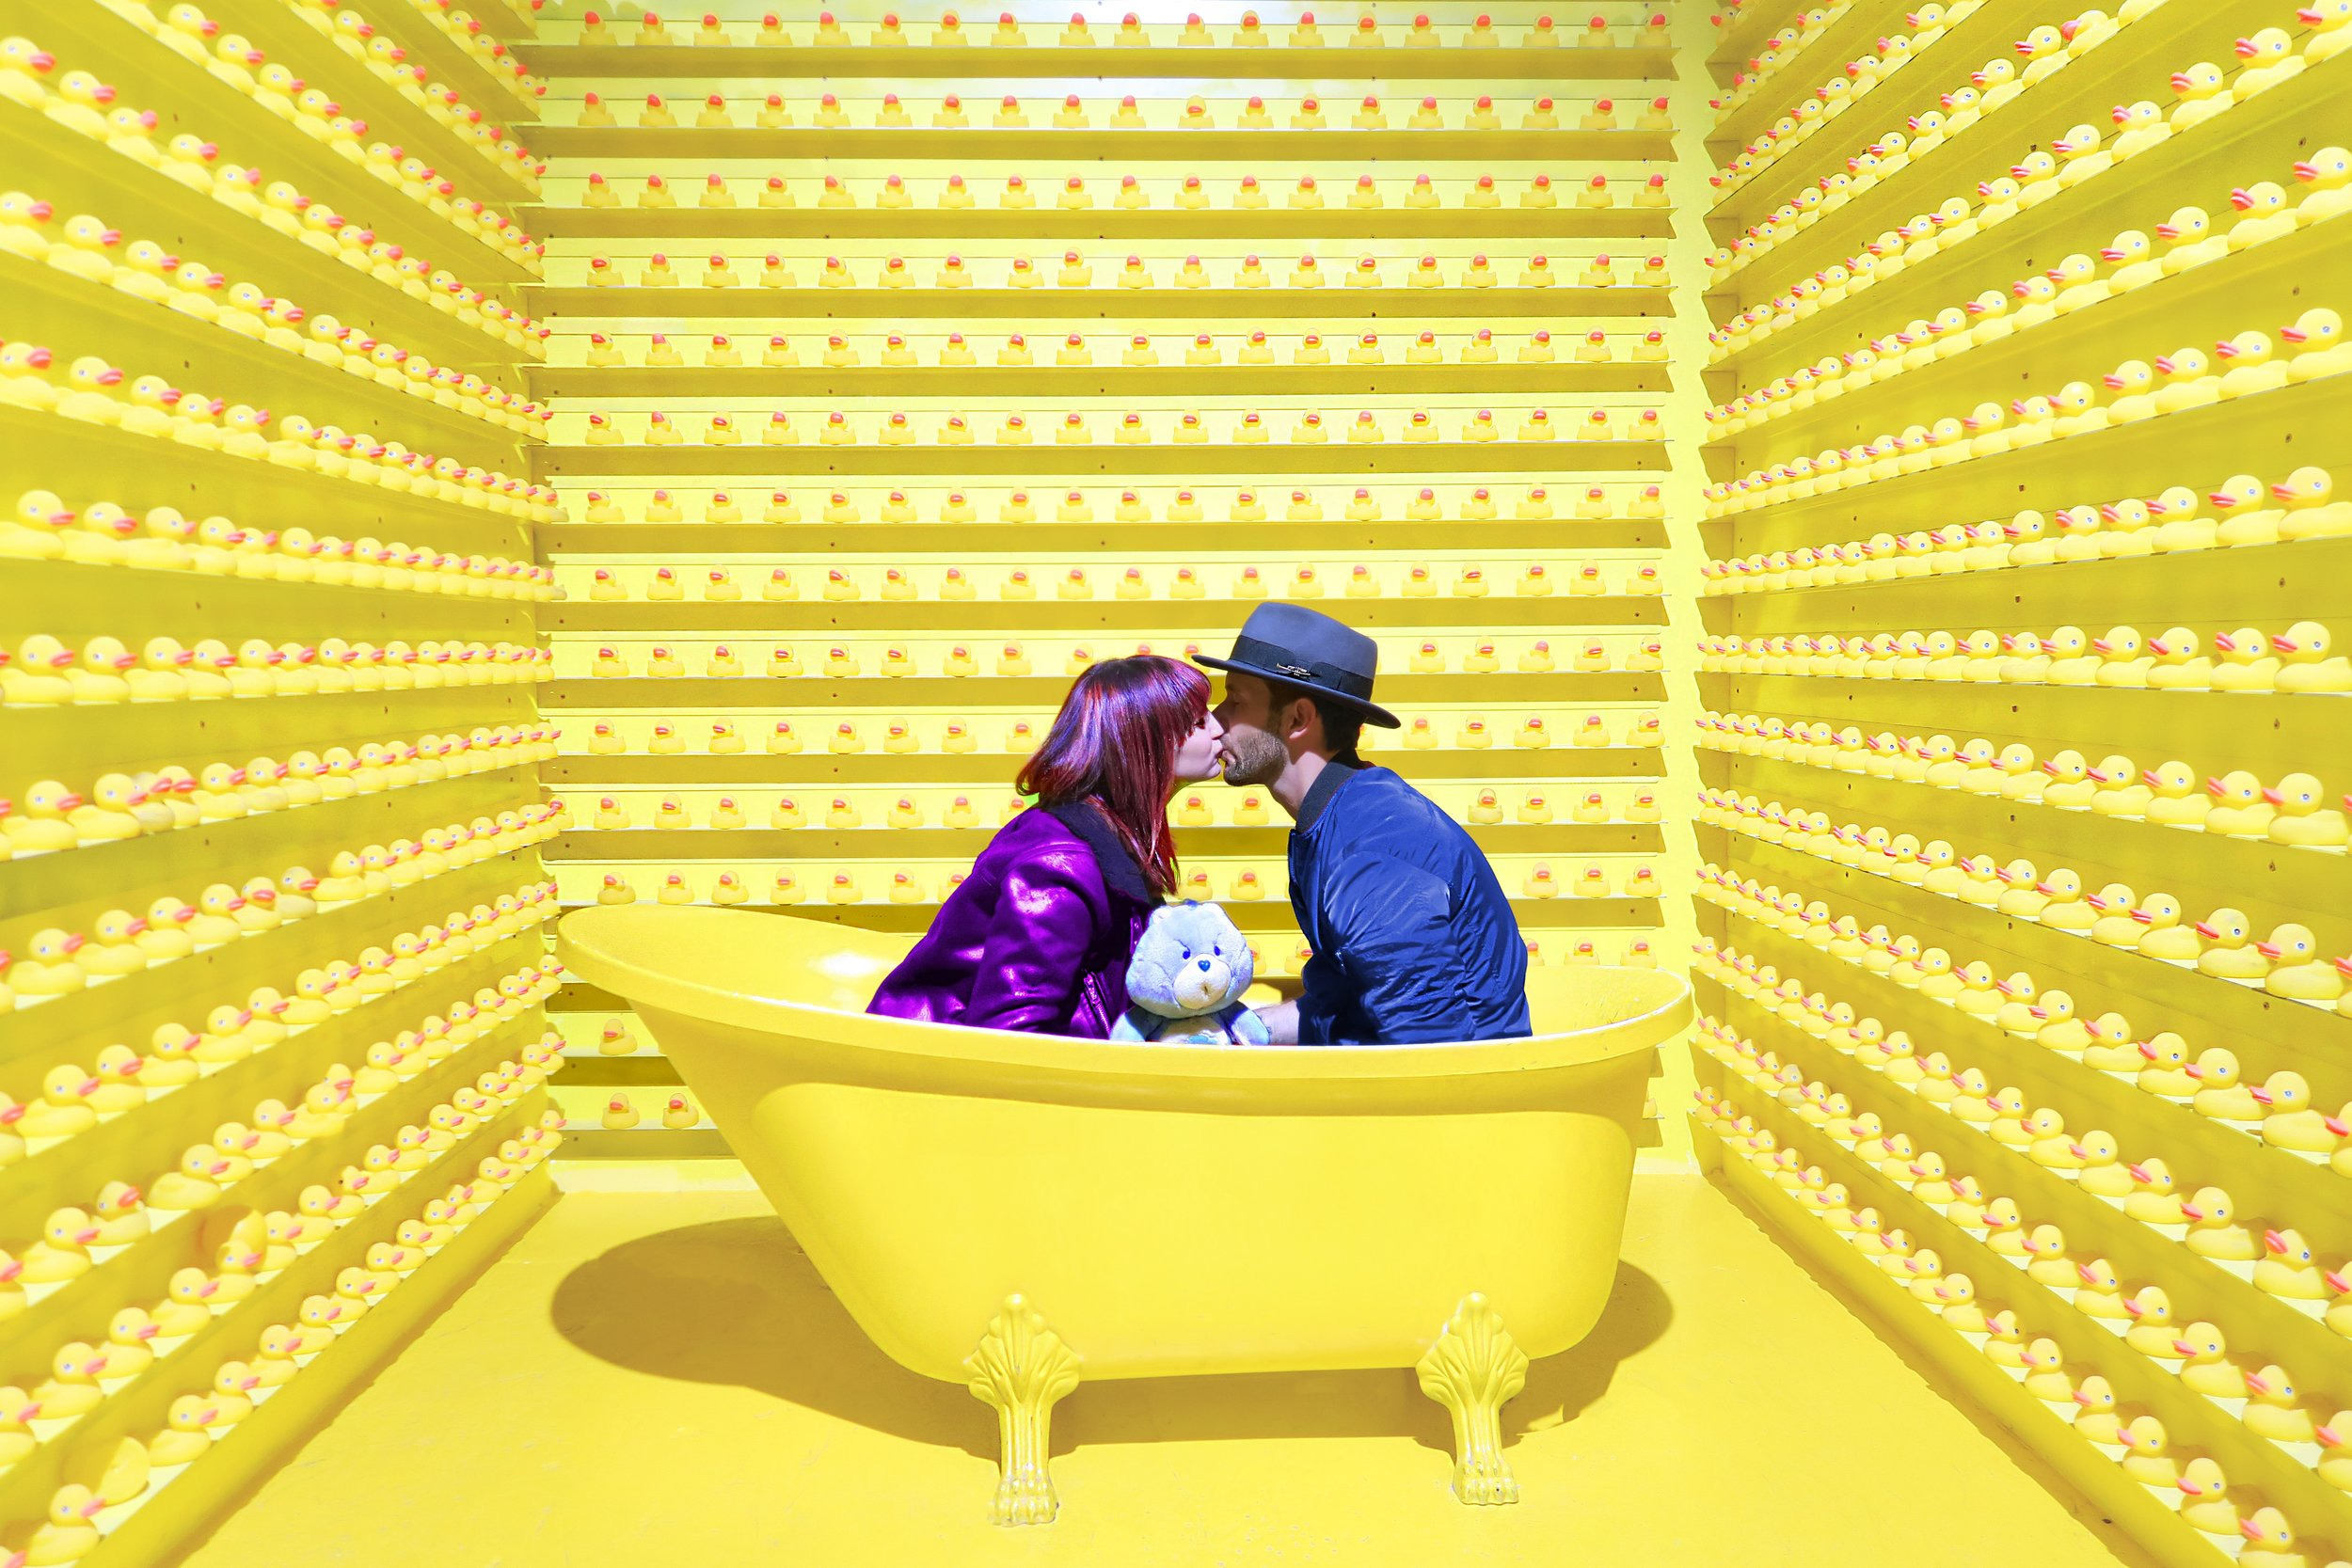 Man and women in a yellow bath